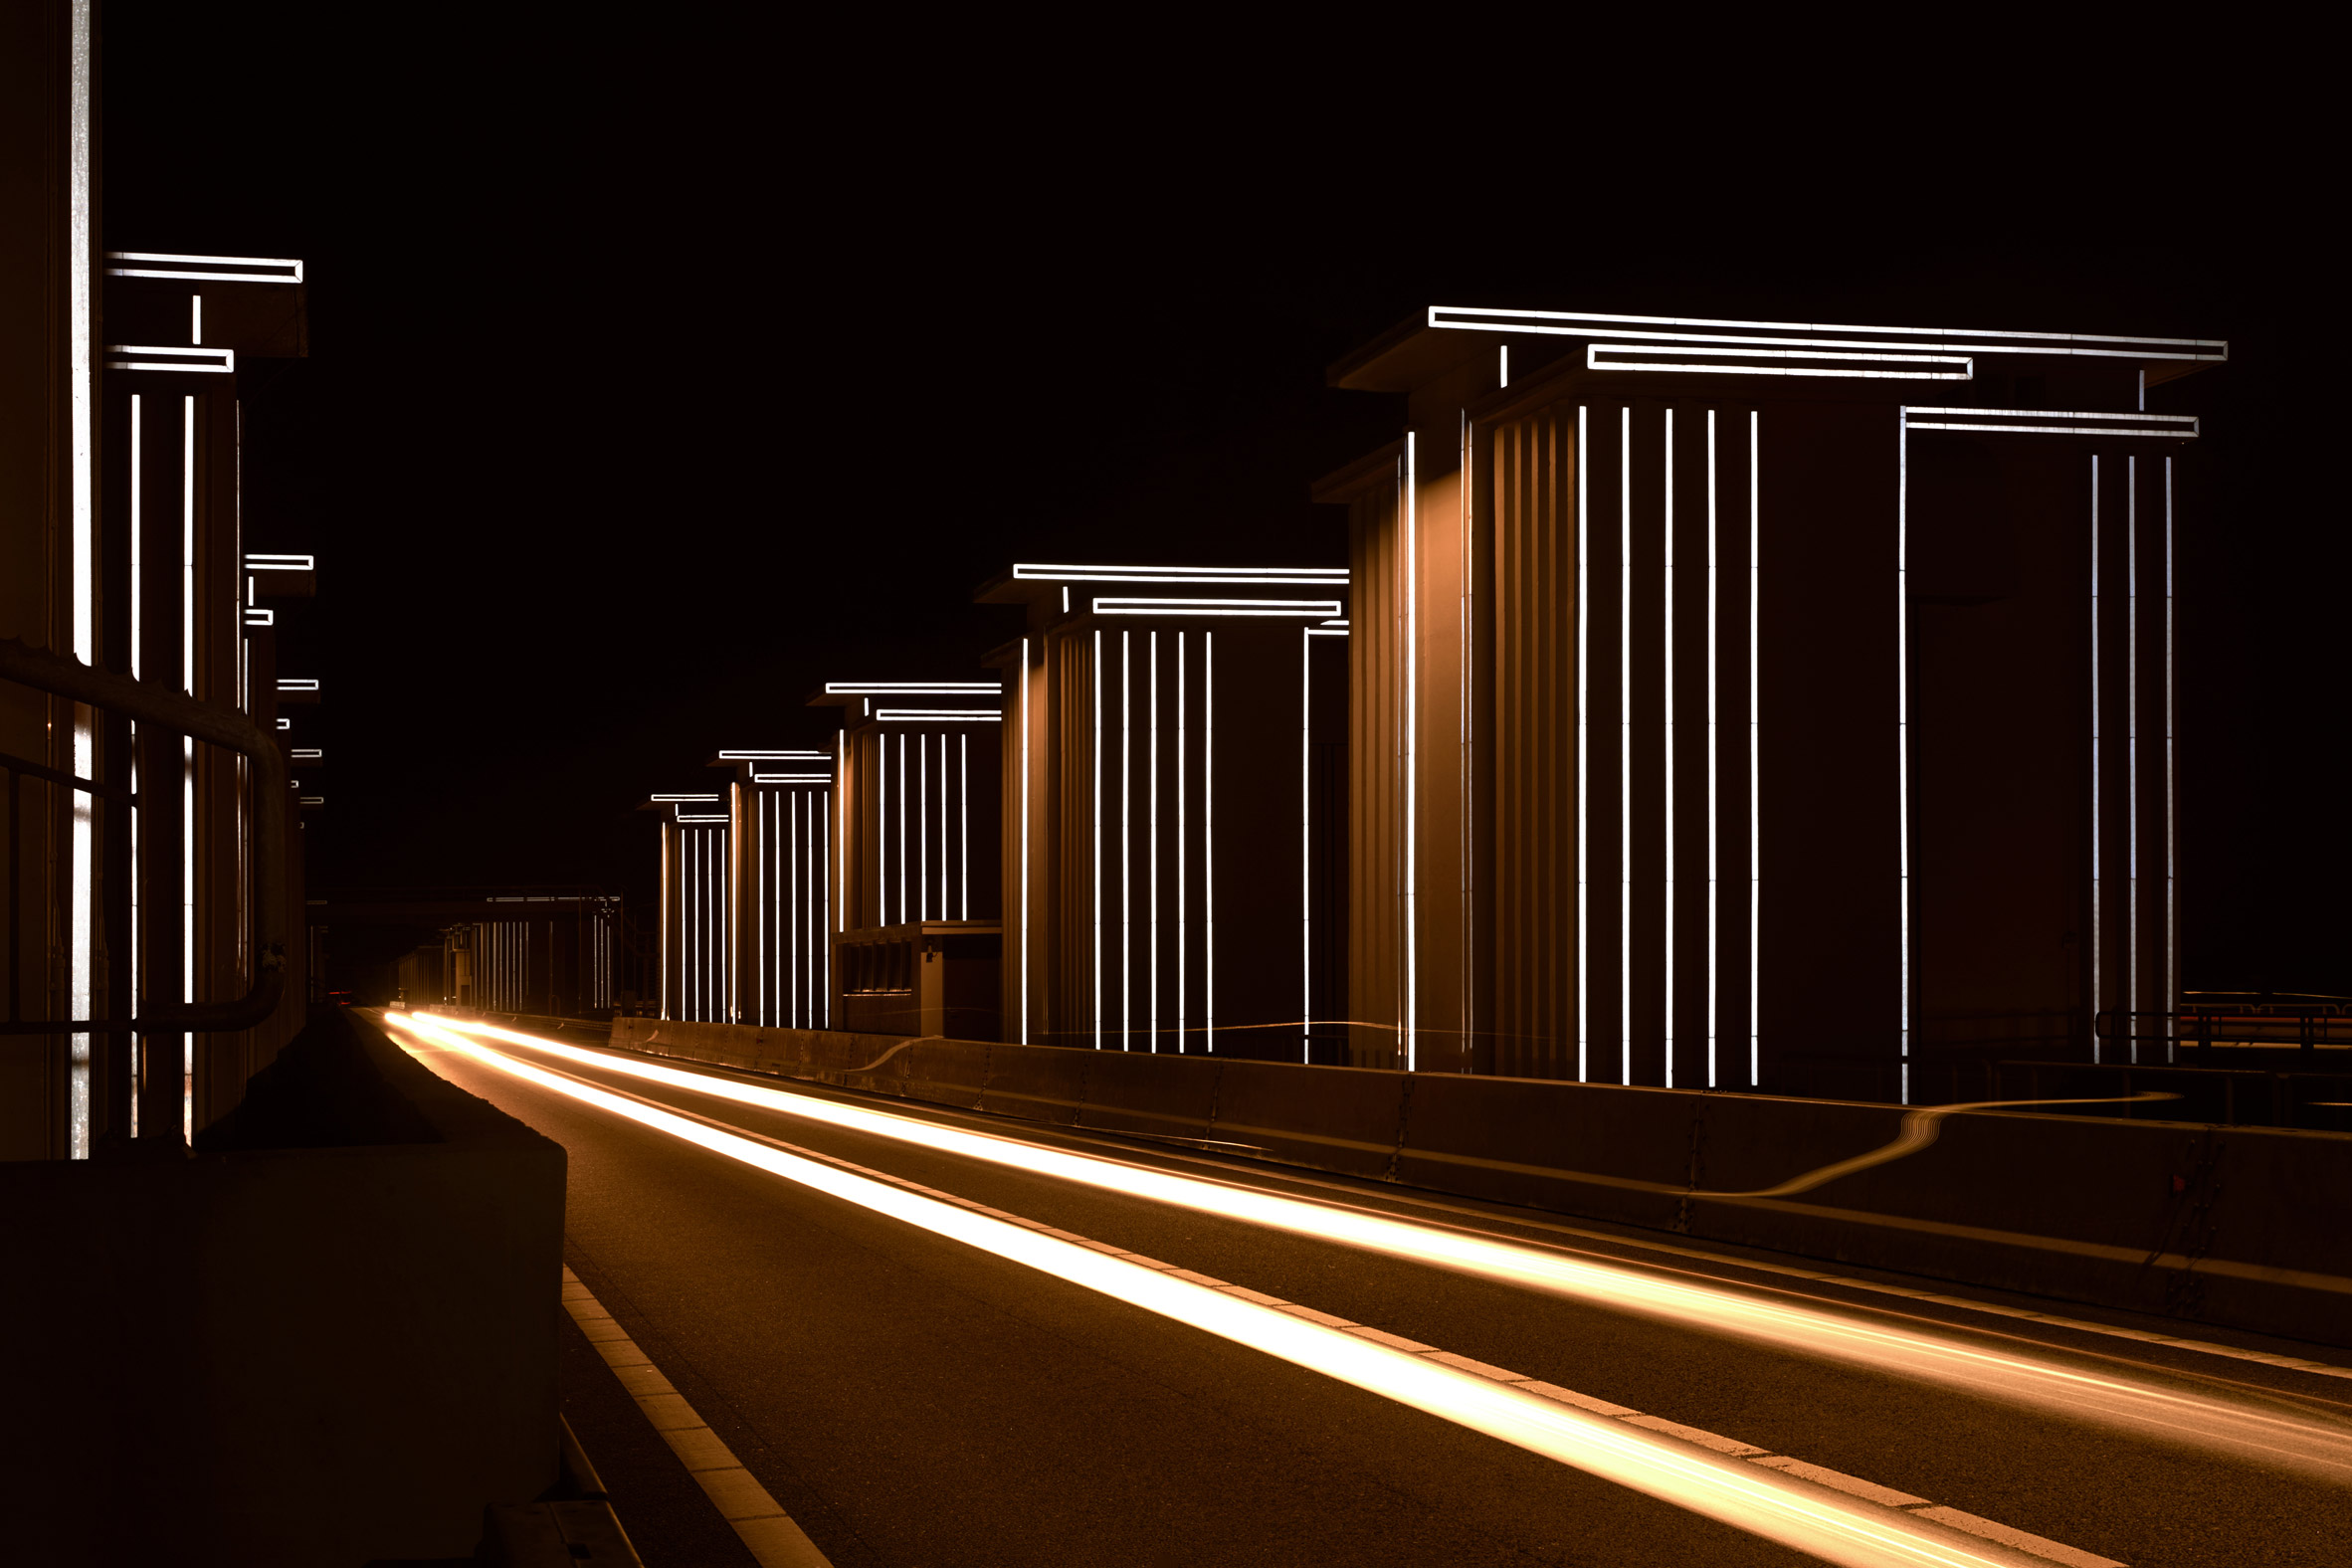 Restored floodgates by Studio Roosegaarde reflect the headlights of passing cars